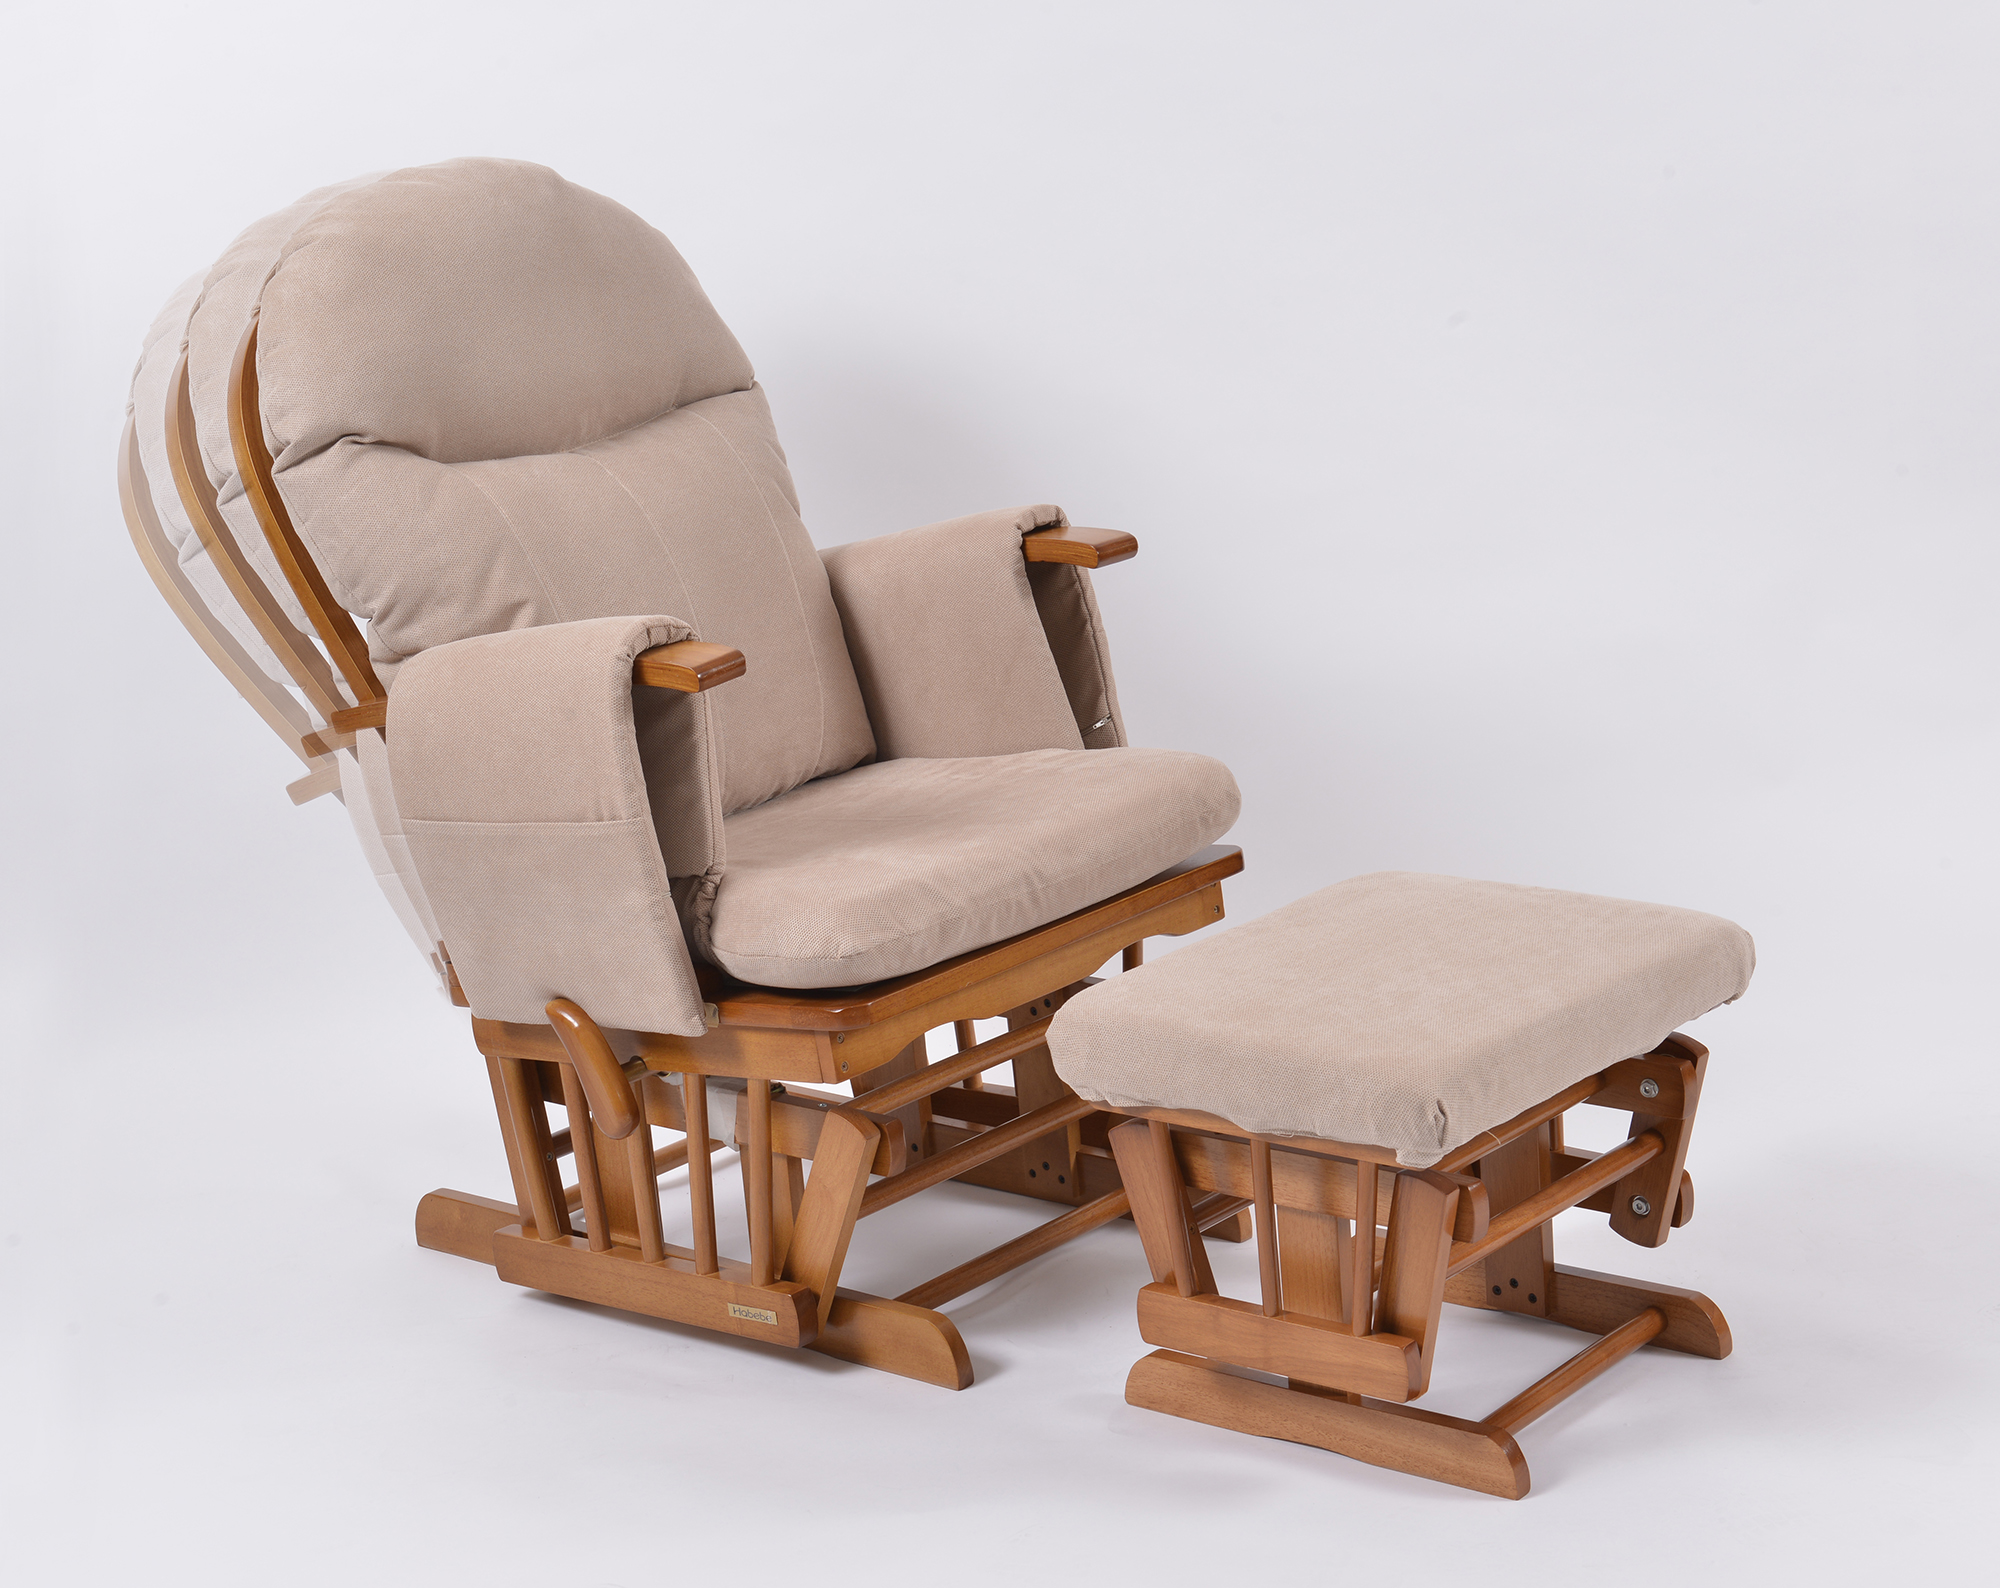 Recliner Seat Covers >> Habebe Glider Chair & Stool – Oak Wood & Cream Washable Covers - Mums 2 b